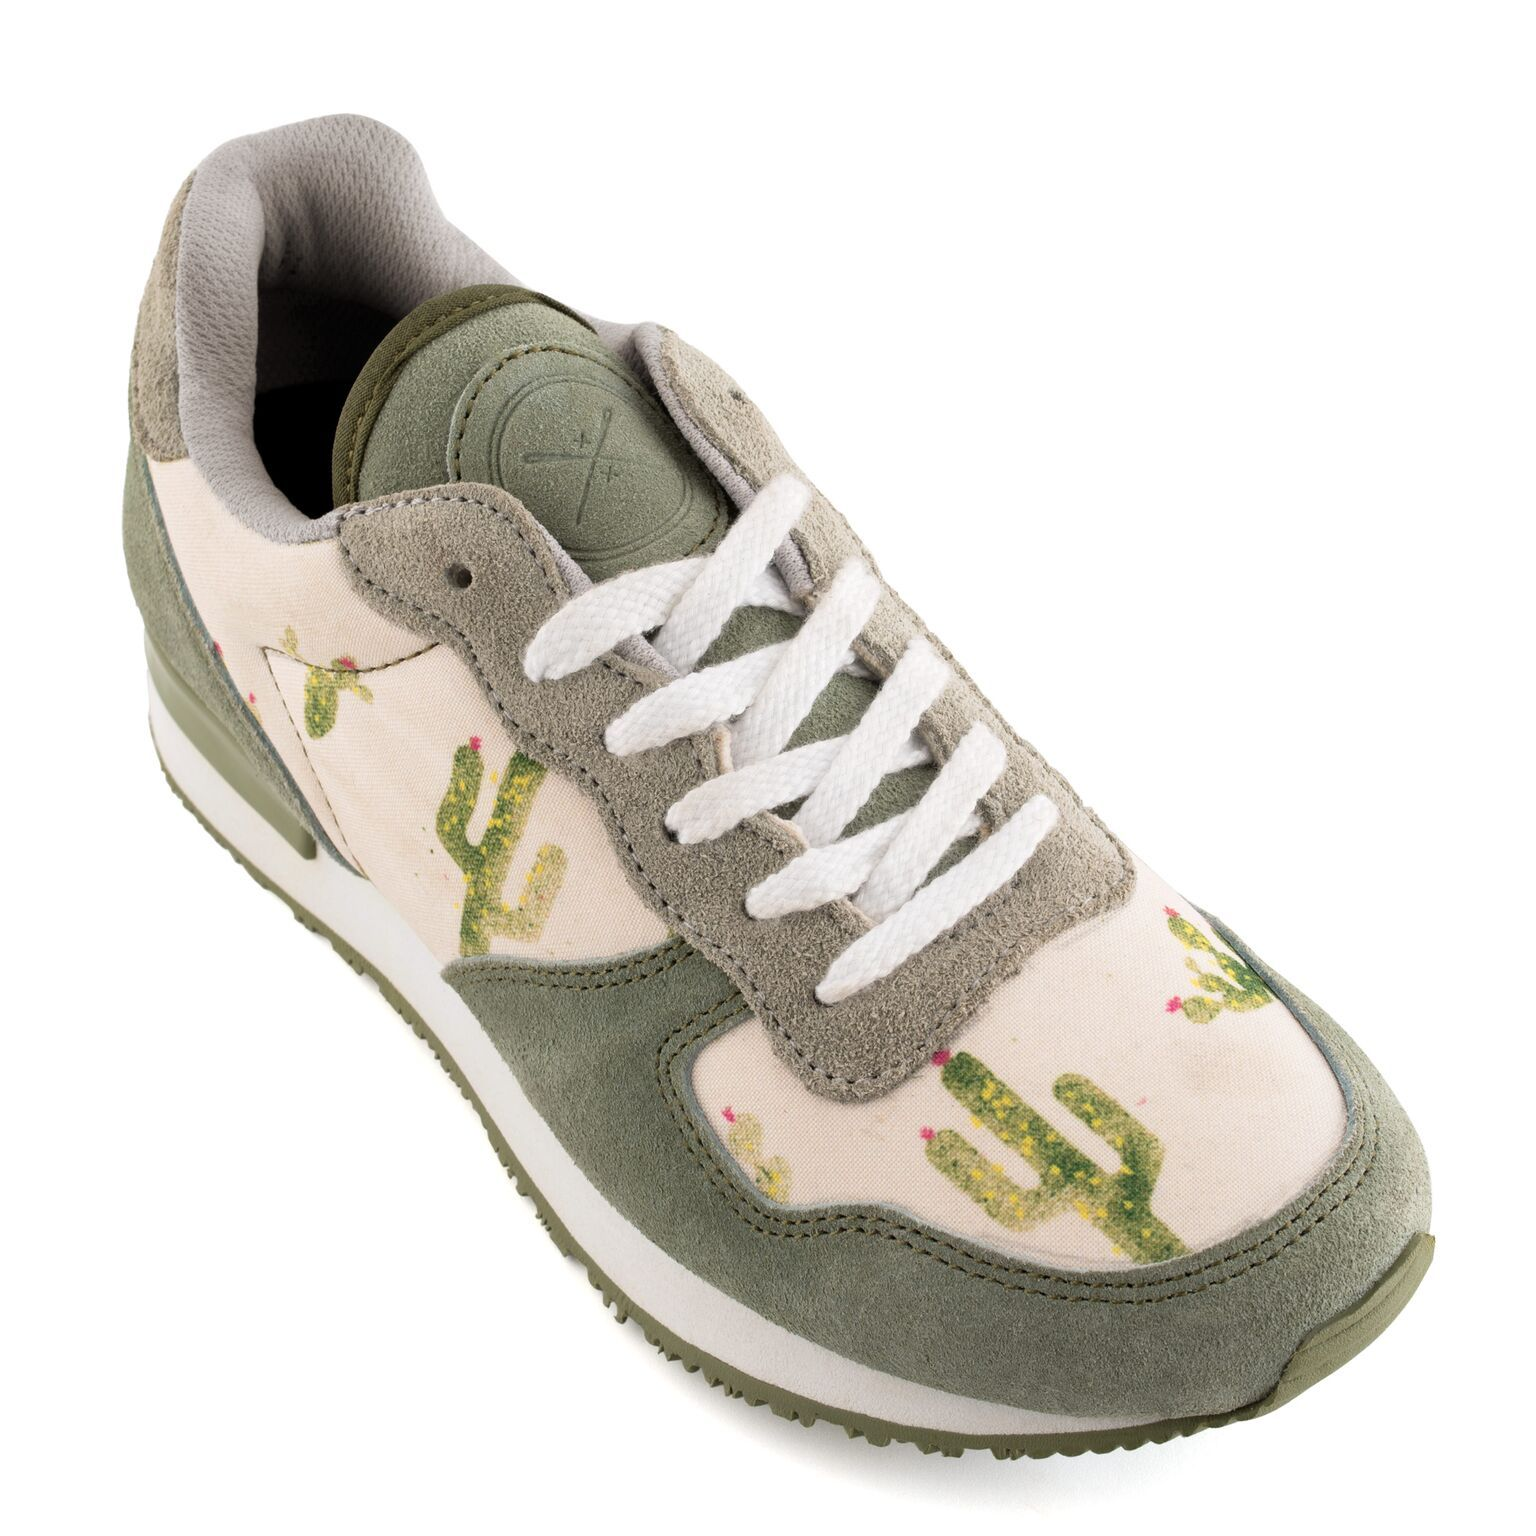 Prickly Jogger - ML Footwear